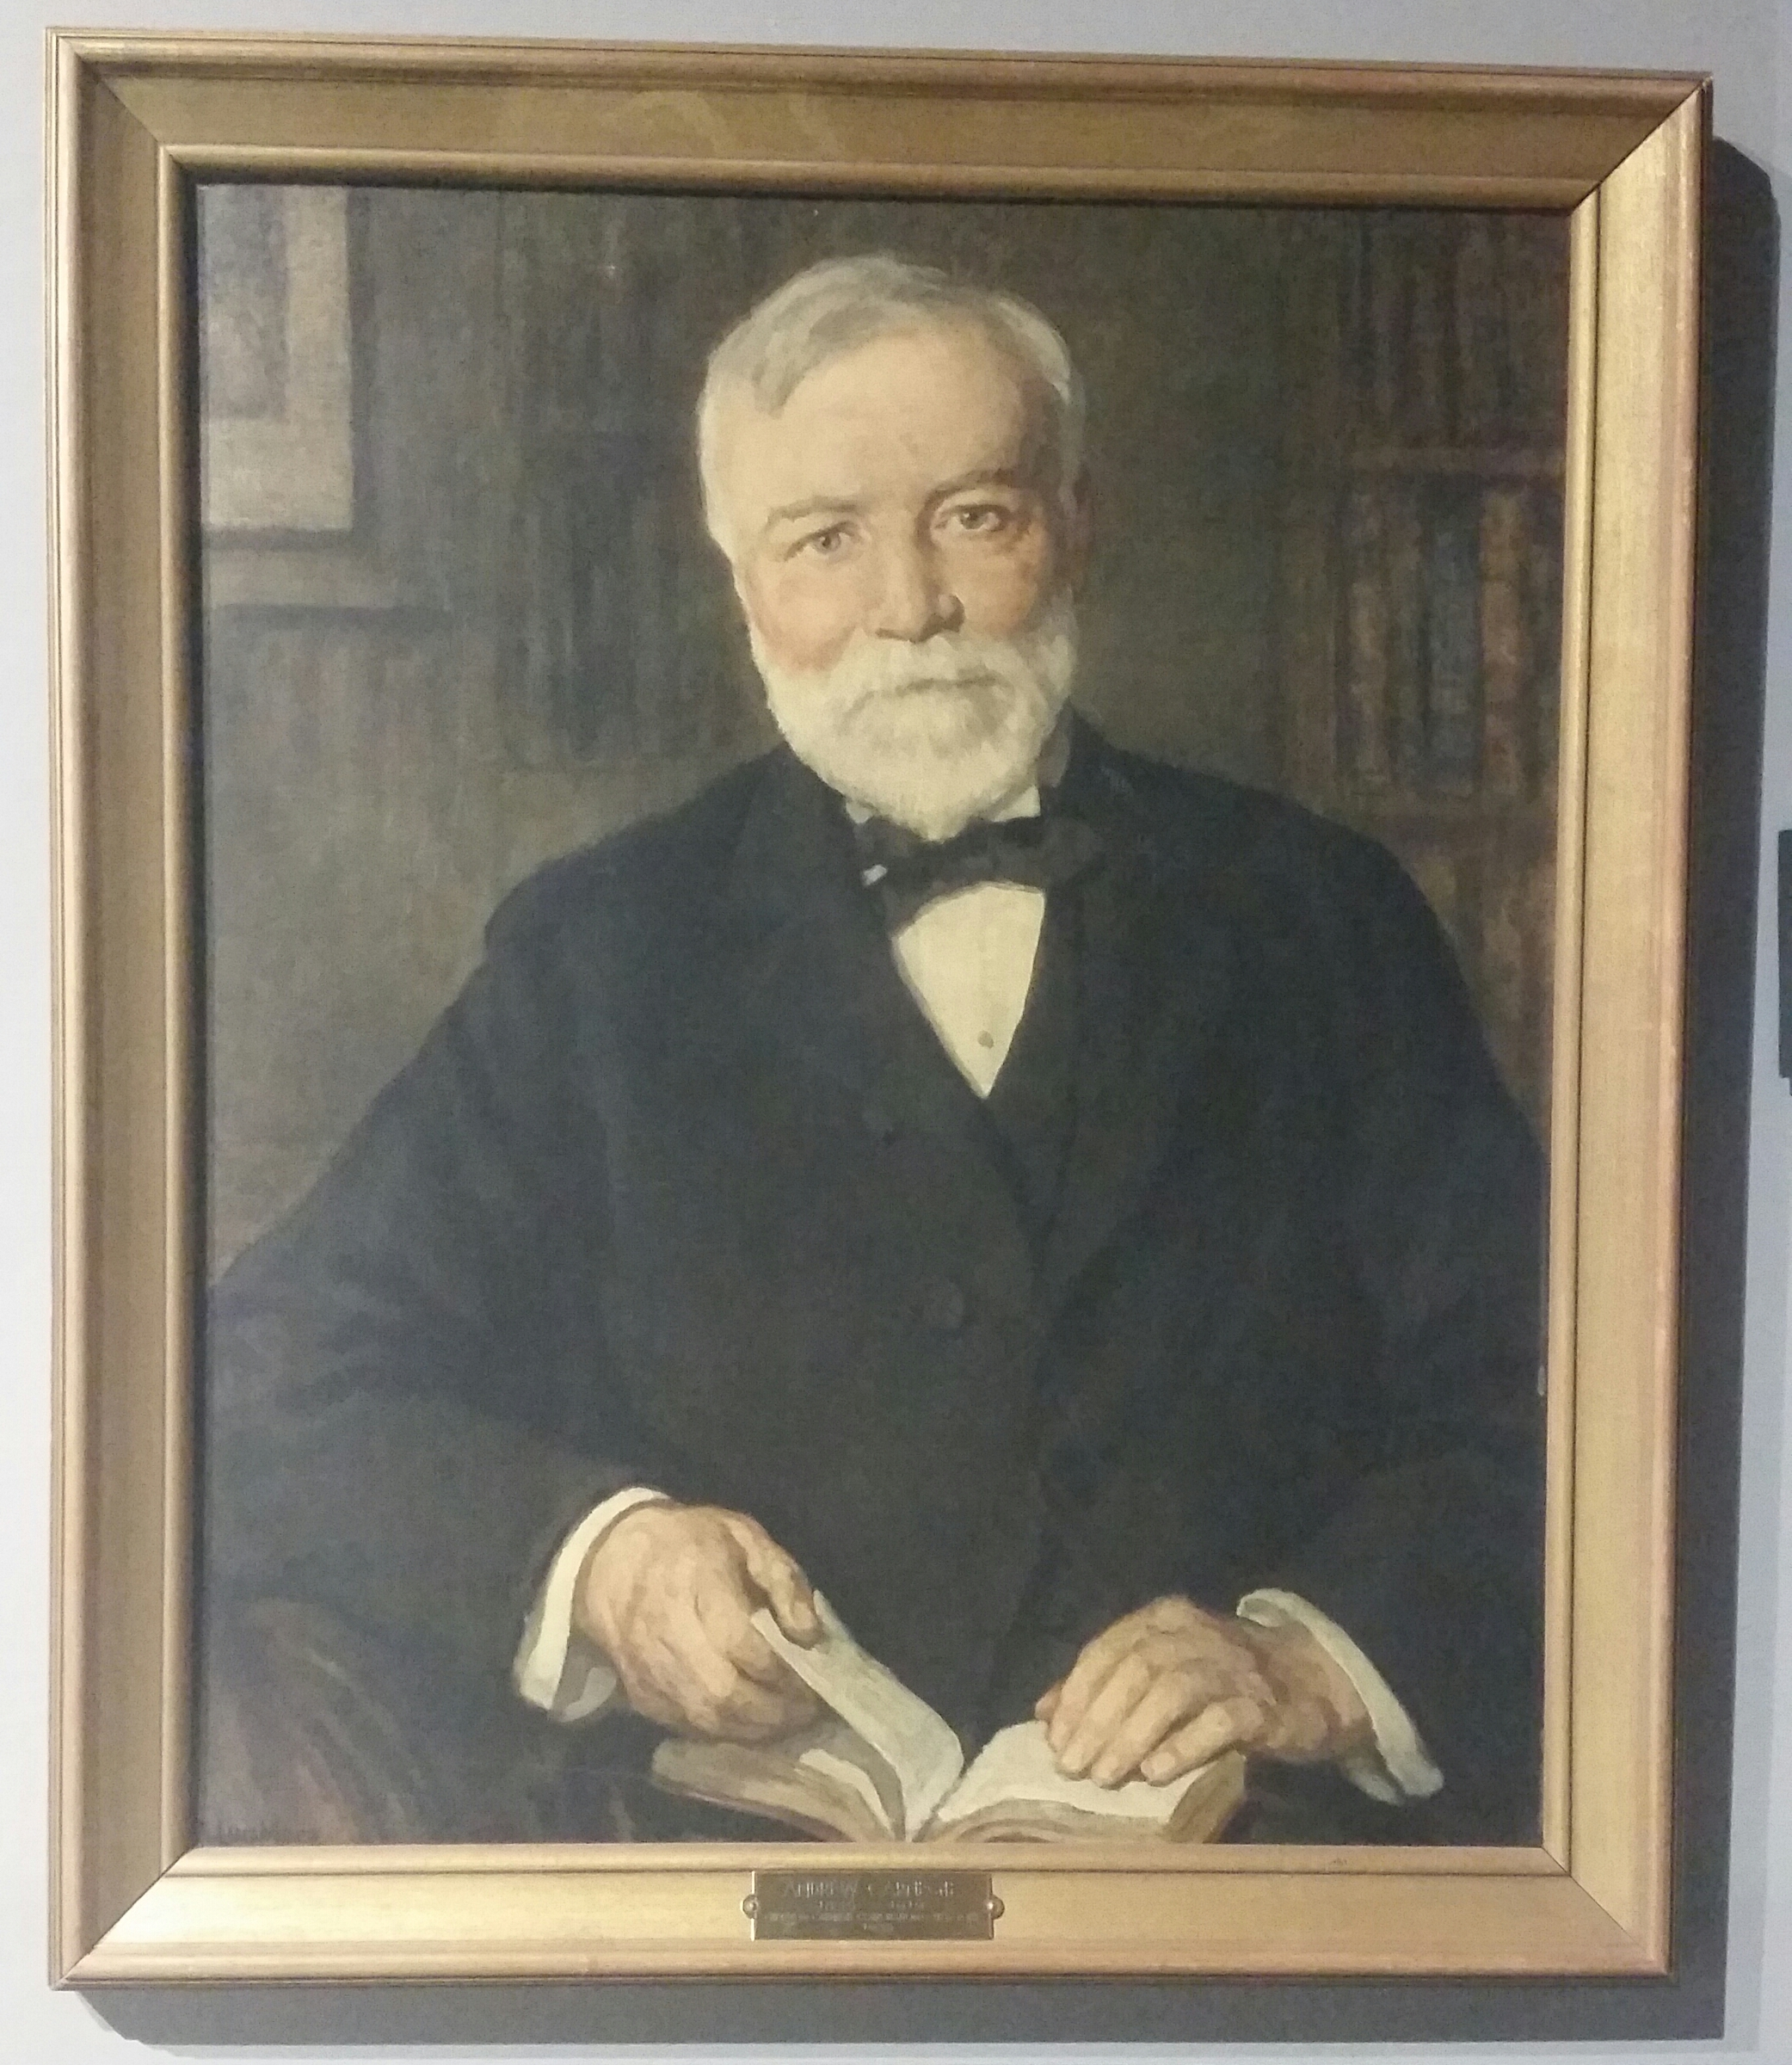 Carnegie portrait that hung in the library. Now in the collection of Frontier Homestead State Park